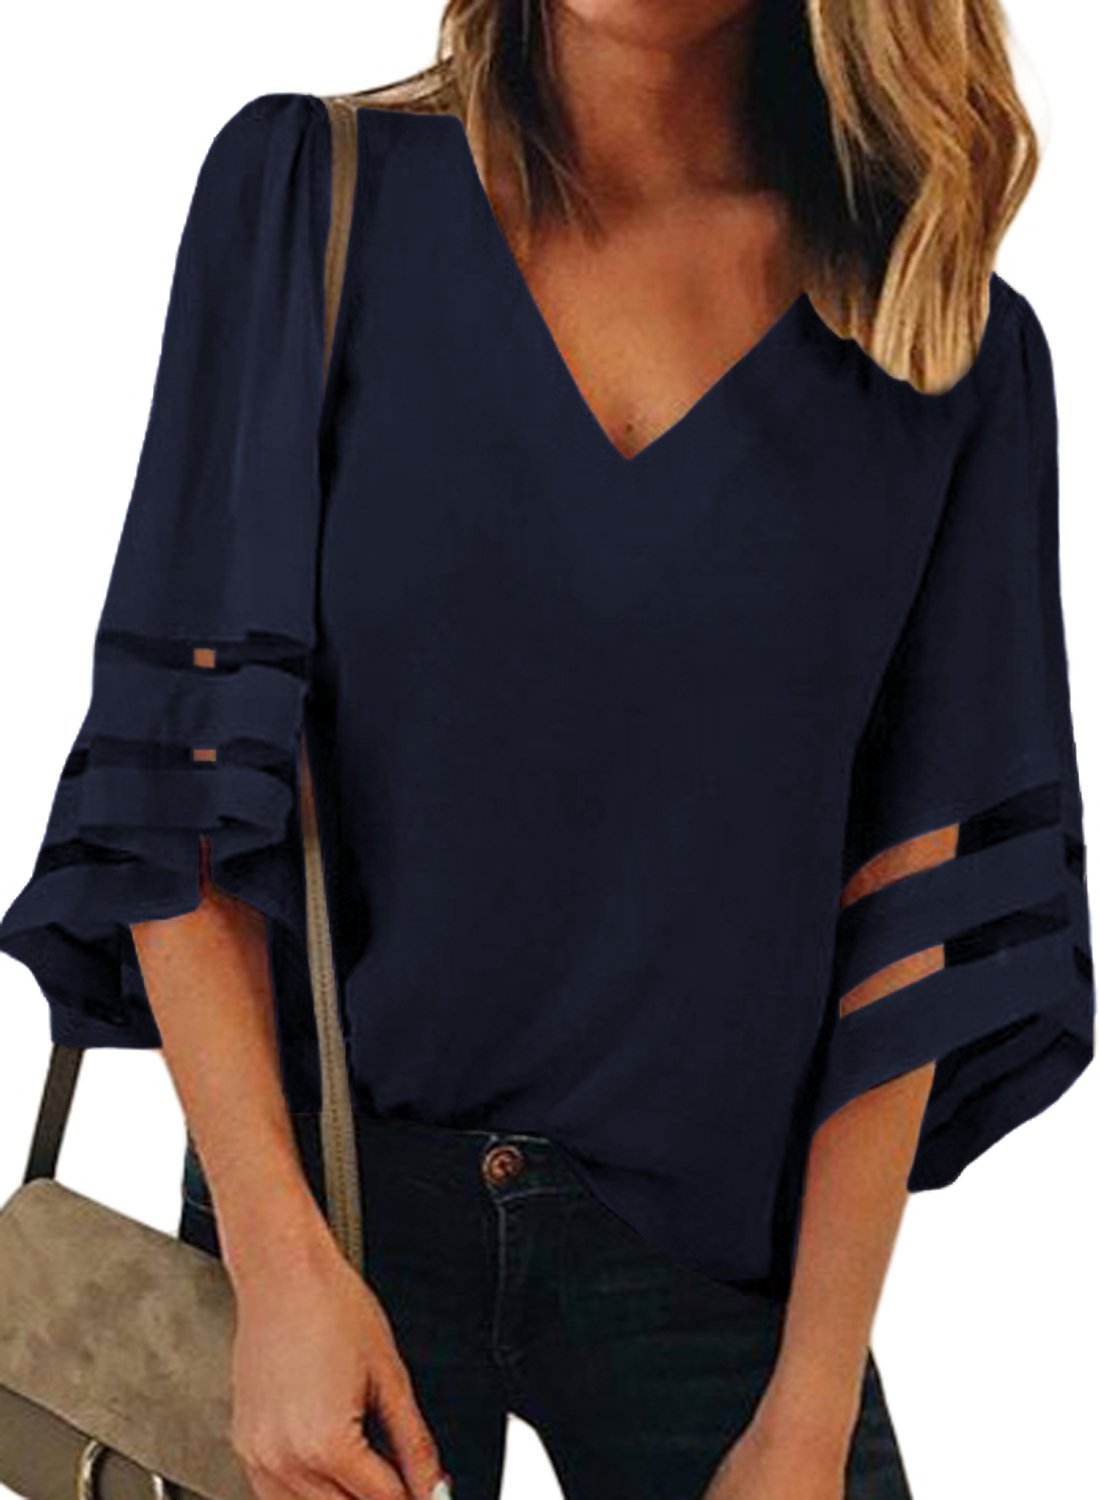 LOSRLY Women V Neck 3/4 Bell Sleeve Lace Patchwork Casual Loose Fit Blouses and Tops-NavyL 12 14